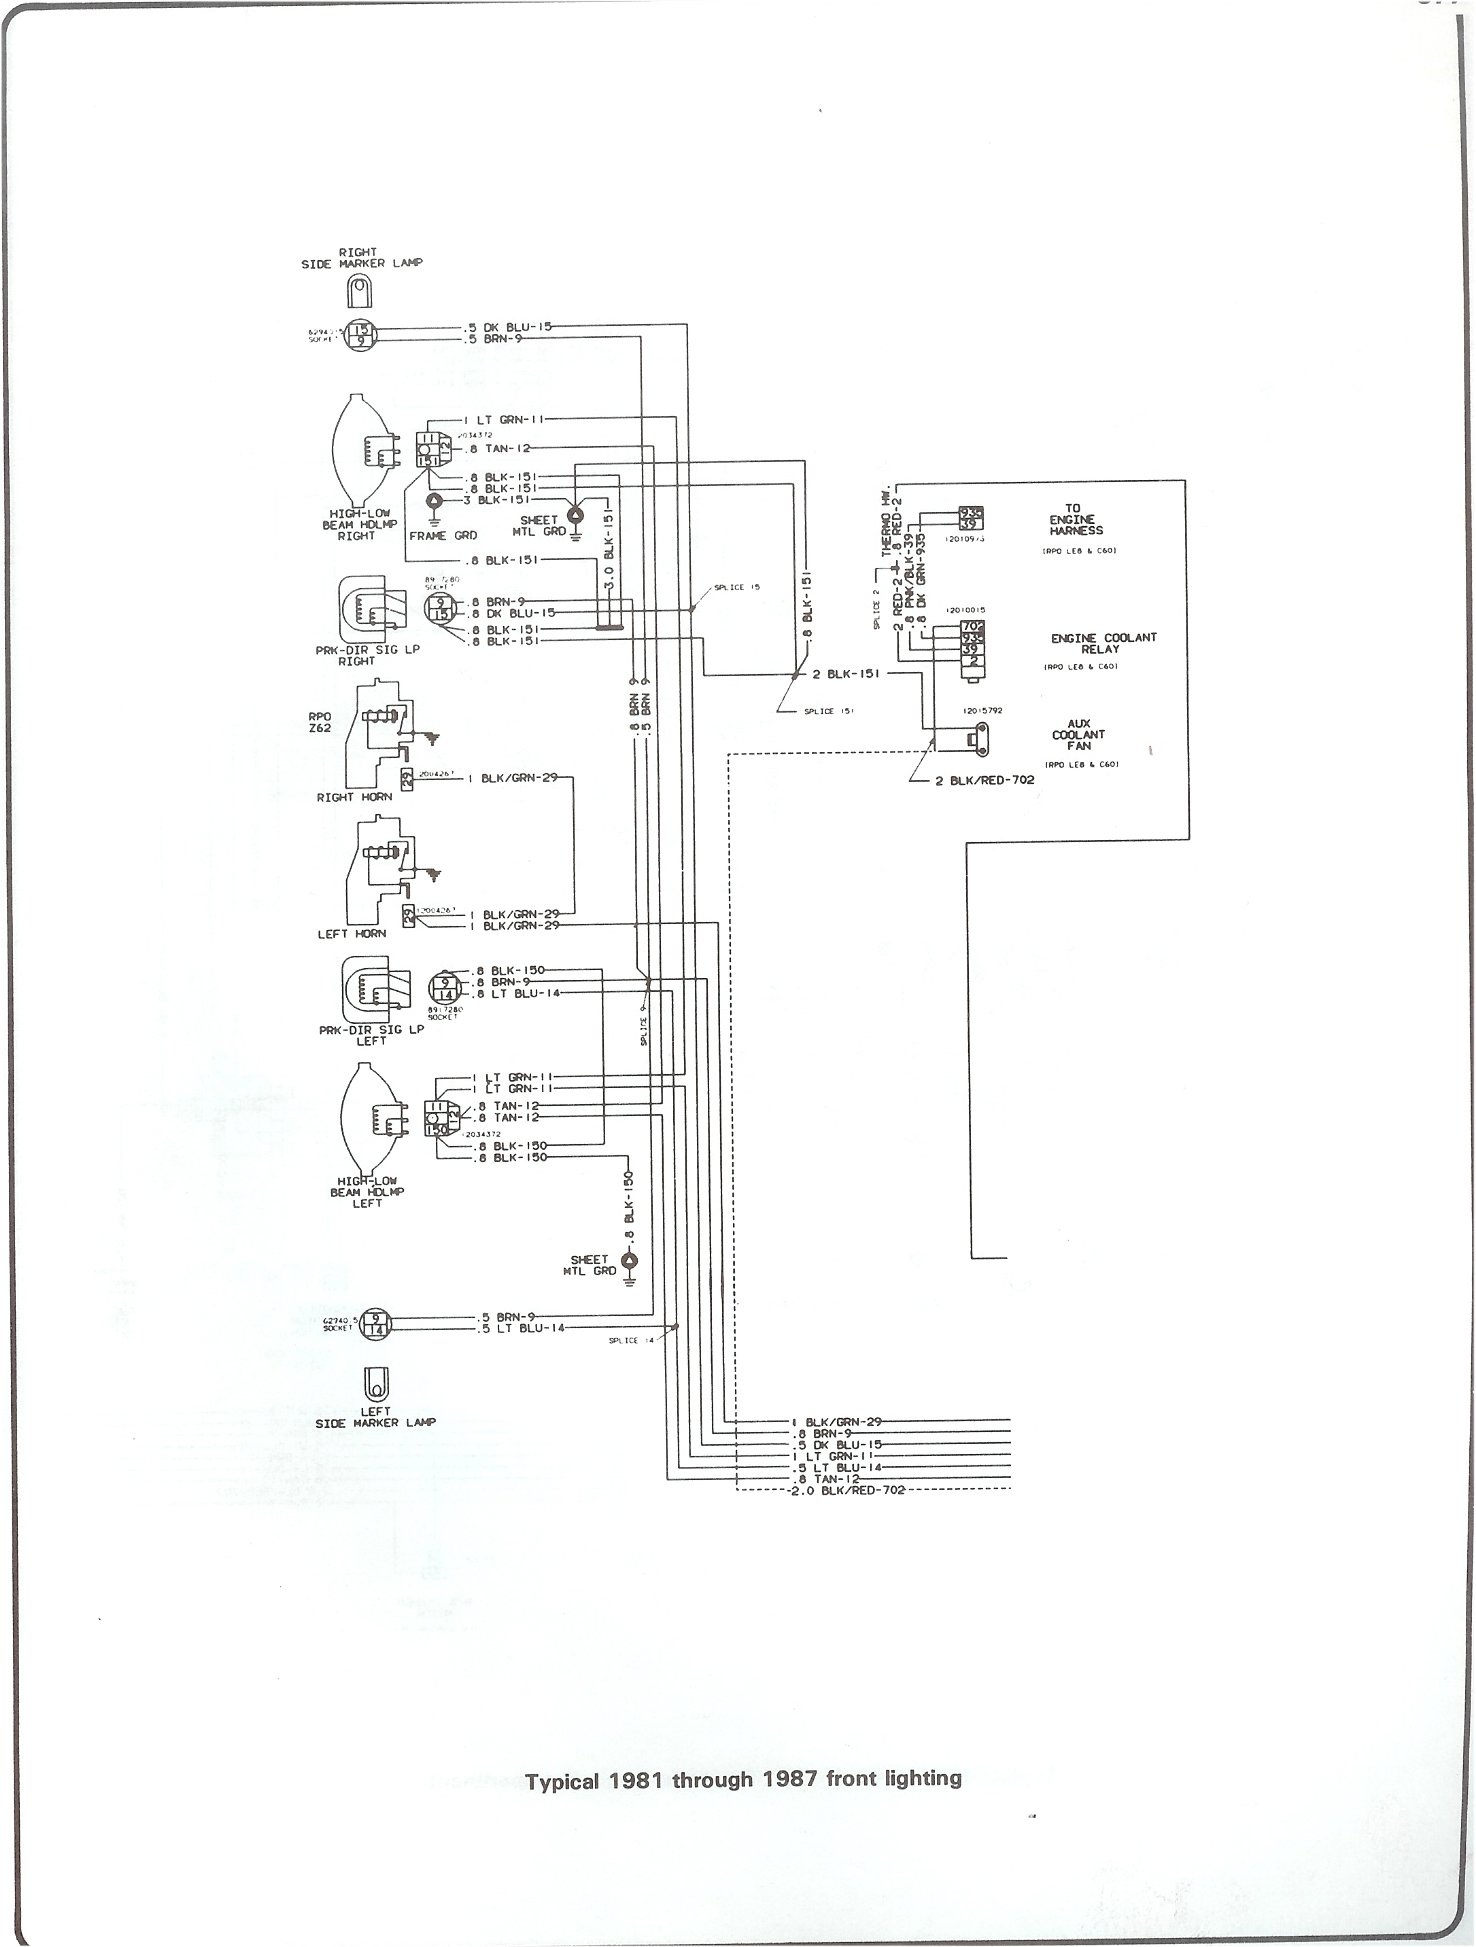 1984 Chevy Truck Wiring Diagrams | Wiring Diagram on chevy pickup headlamp wiring, chevy k10 6 inch lift, chevy tail light diagram, 89 chevy truck light diagram,